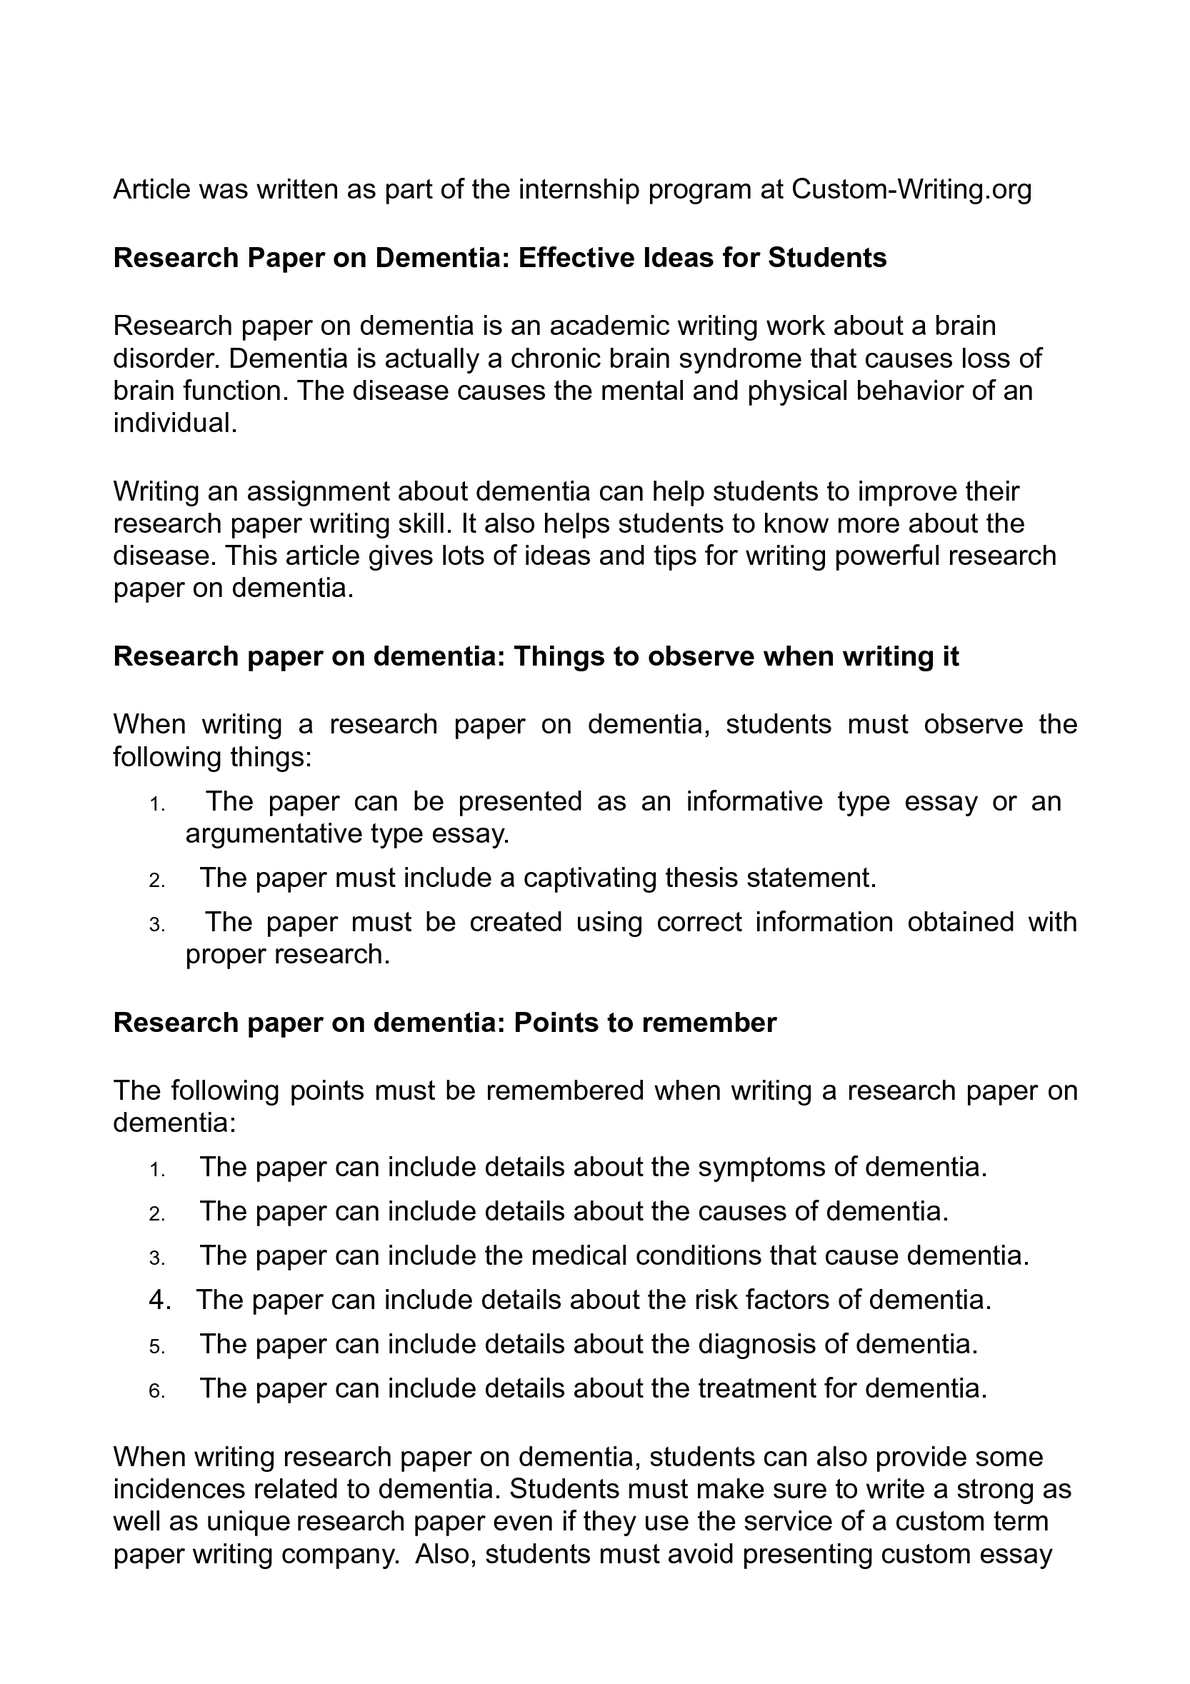 009 Research Paper Unique Ideas Imposing Titles For High School Students In Psychology Biology Full